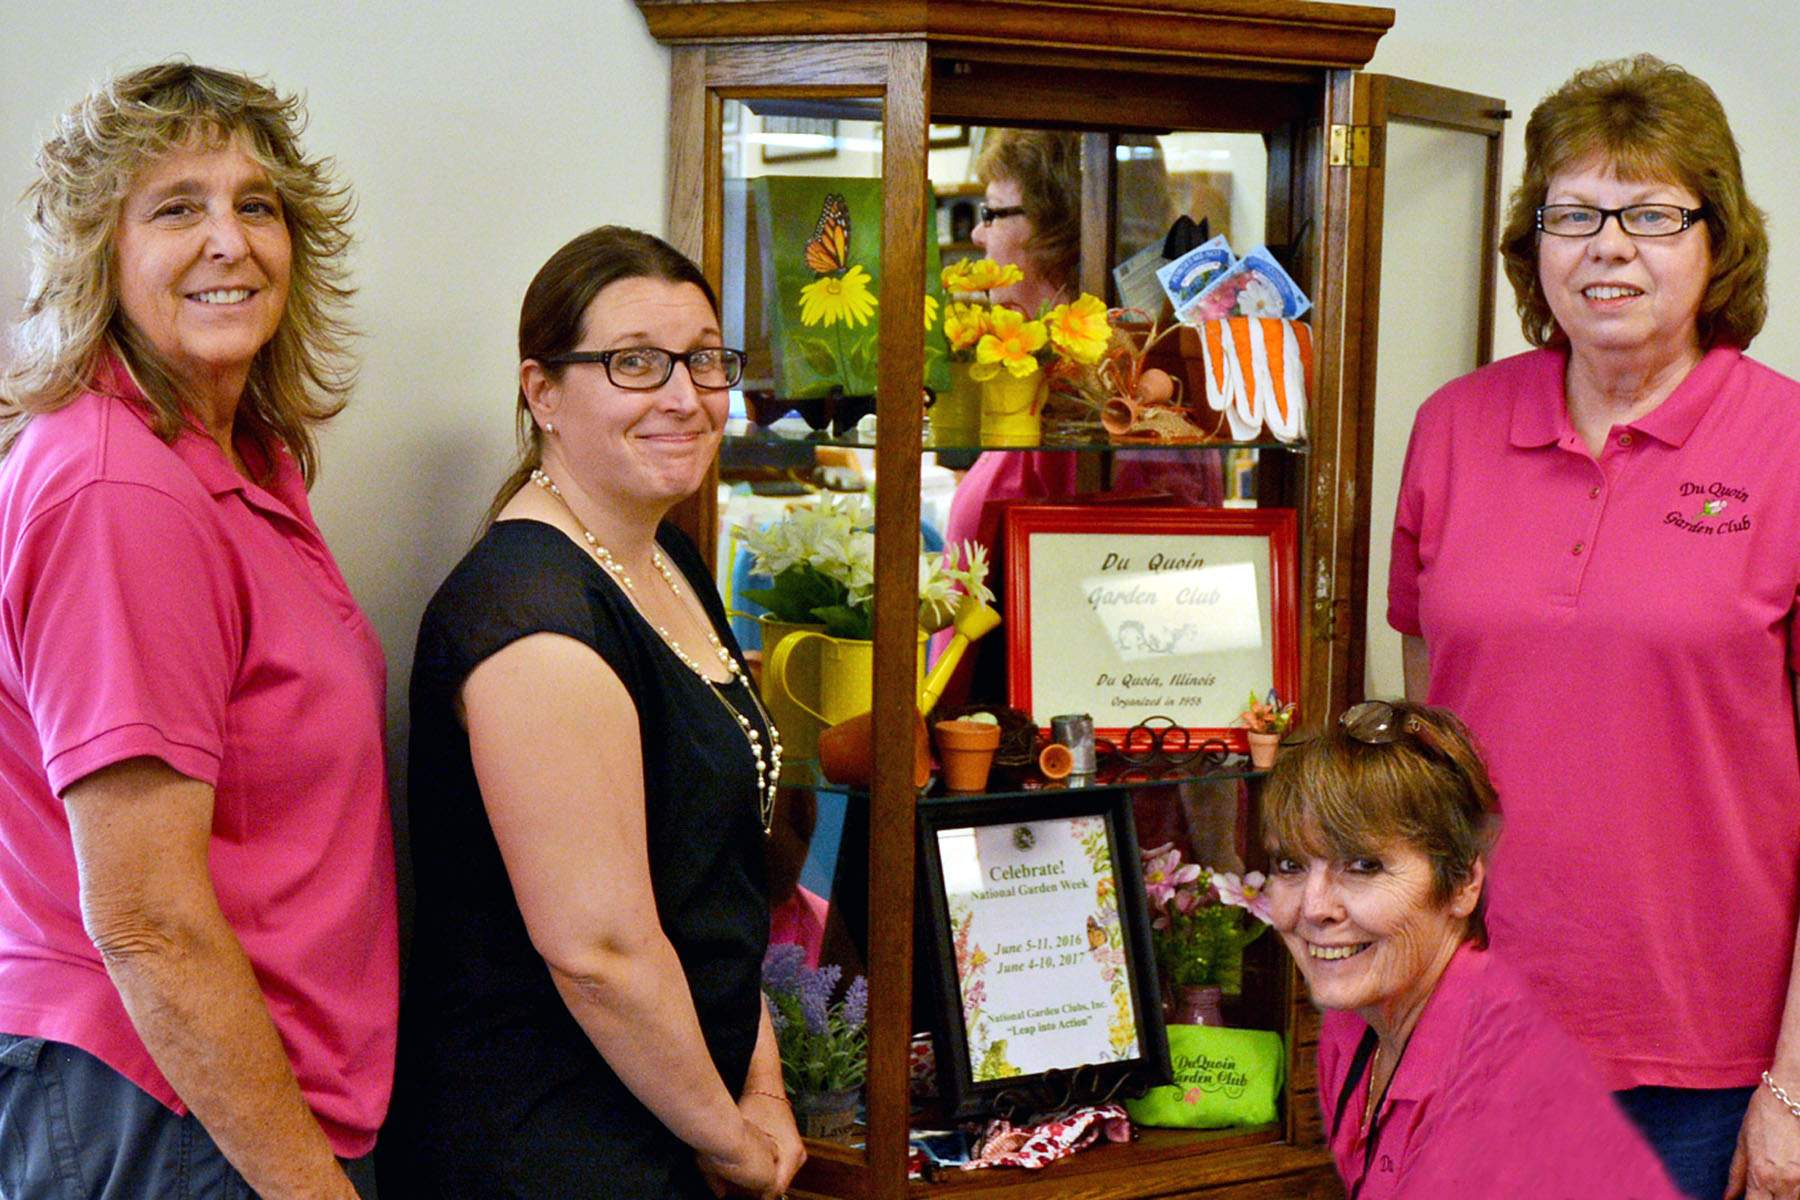 Pictured from left to right are Jean Bullock, Du Quoin Public Library Director Kristina Benson, Mary Jane Field and Julie Wilson.